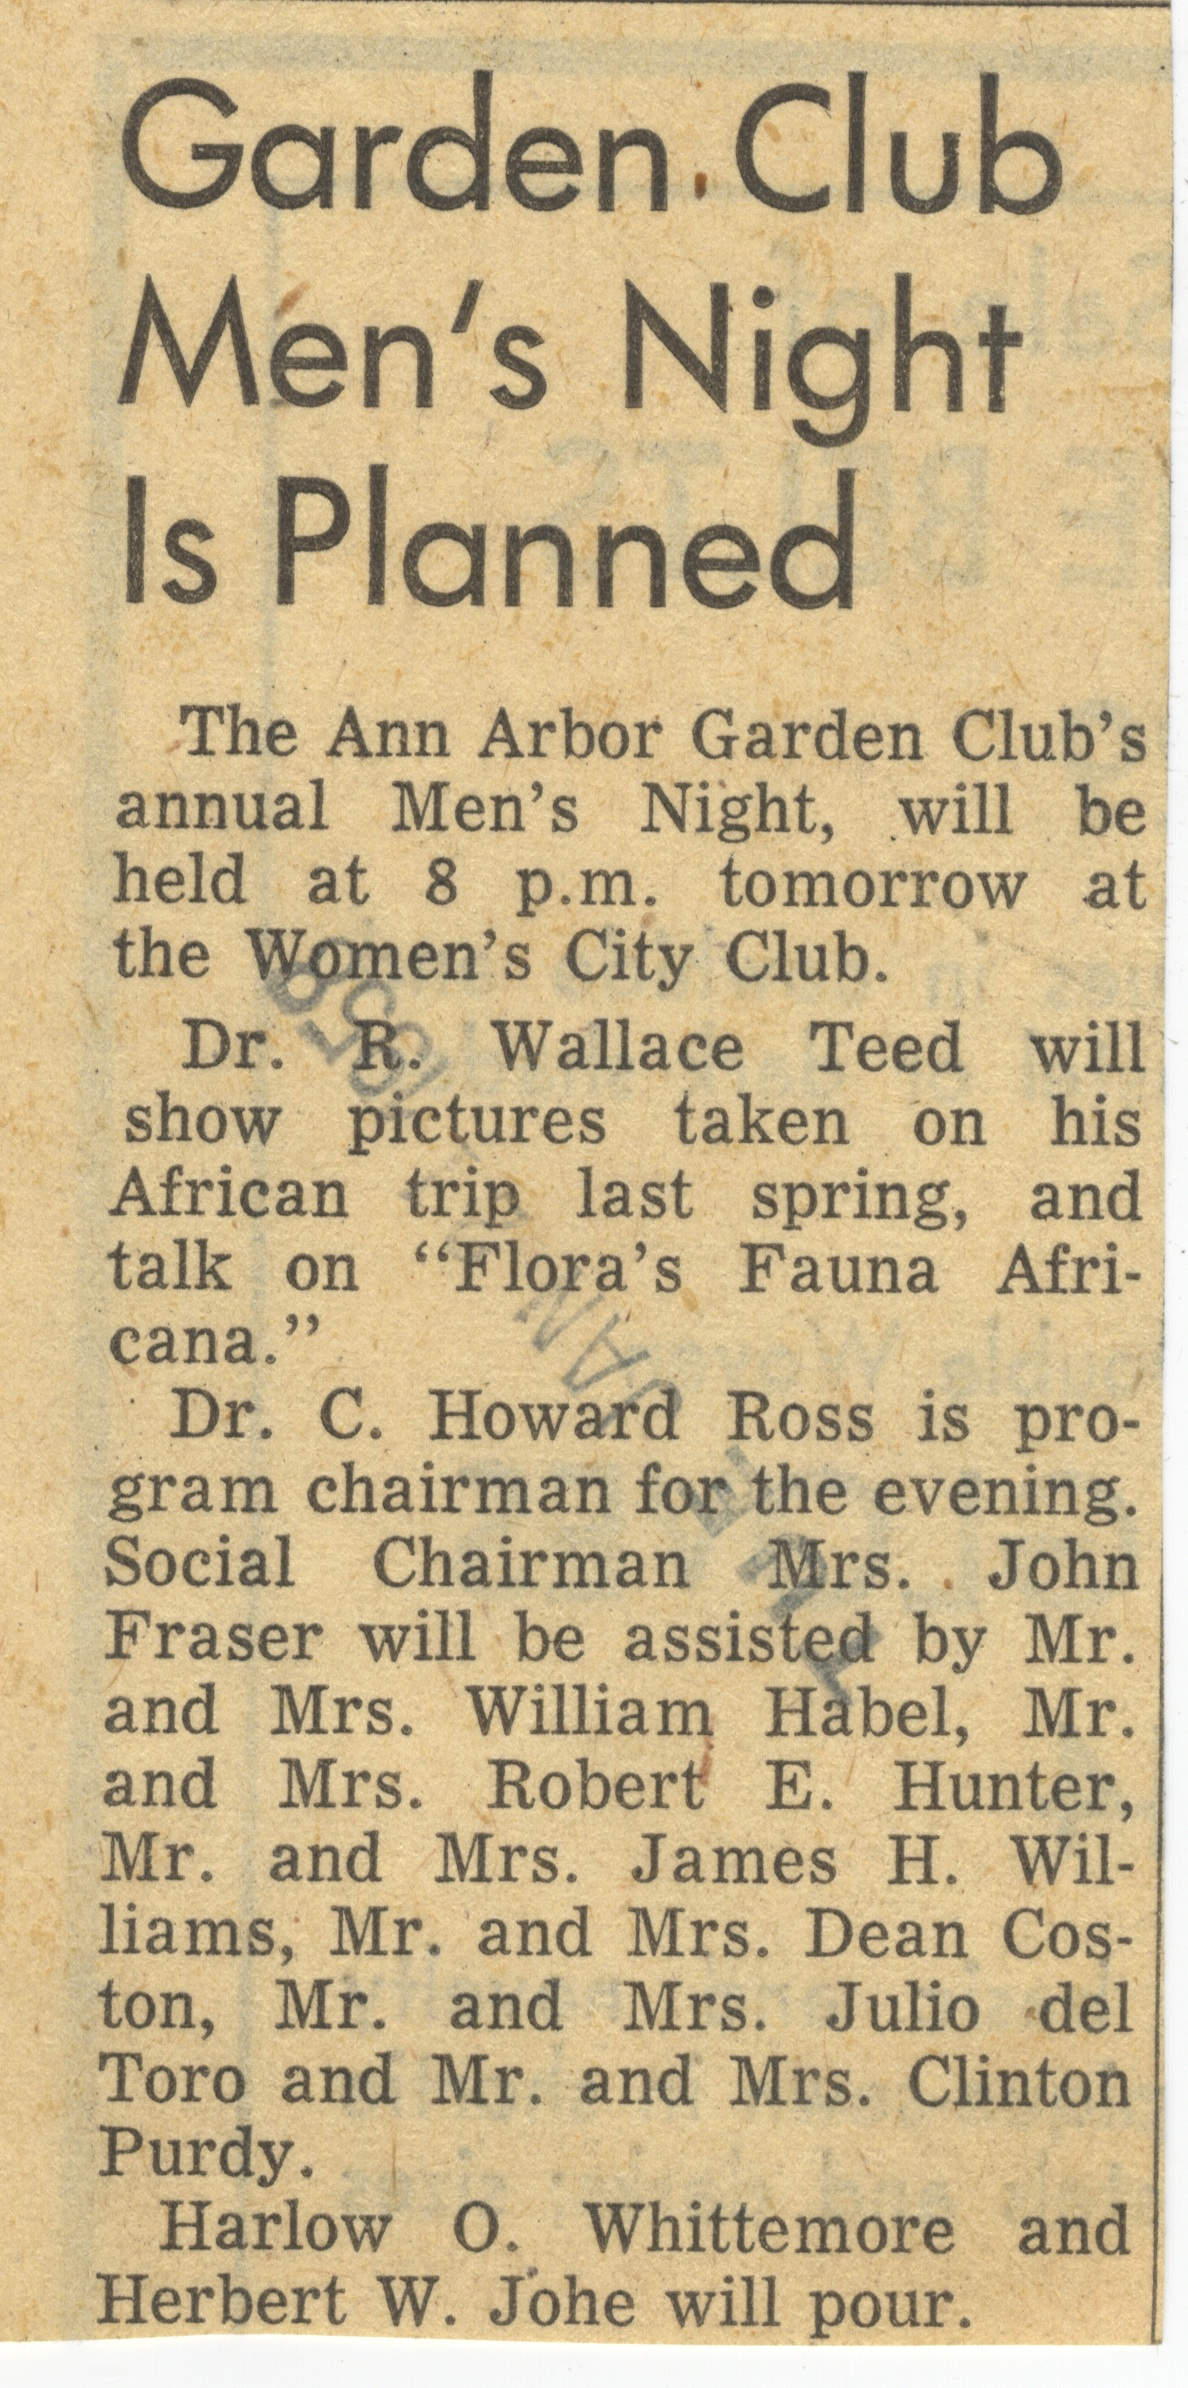 Garden Club Men's Night Is Planned image